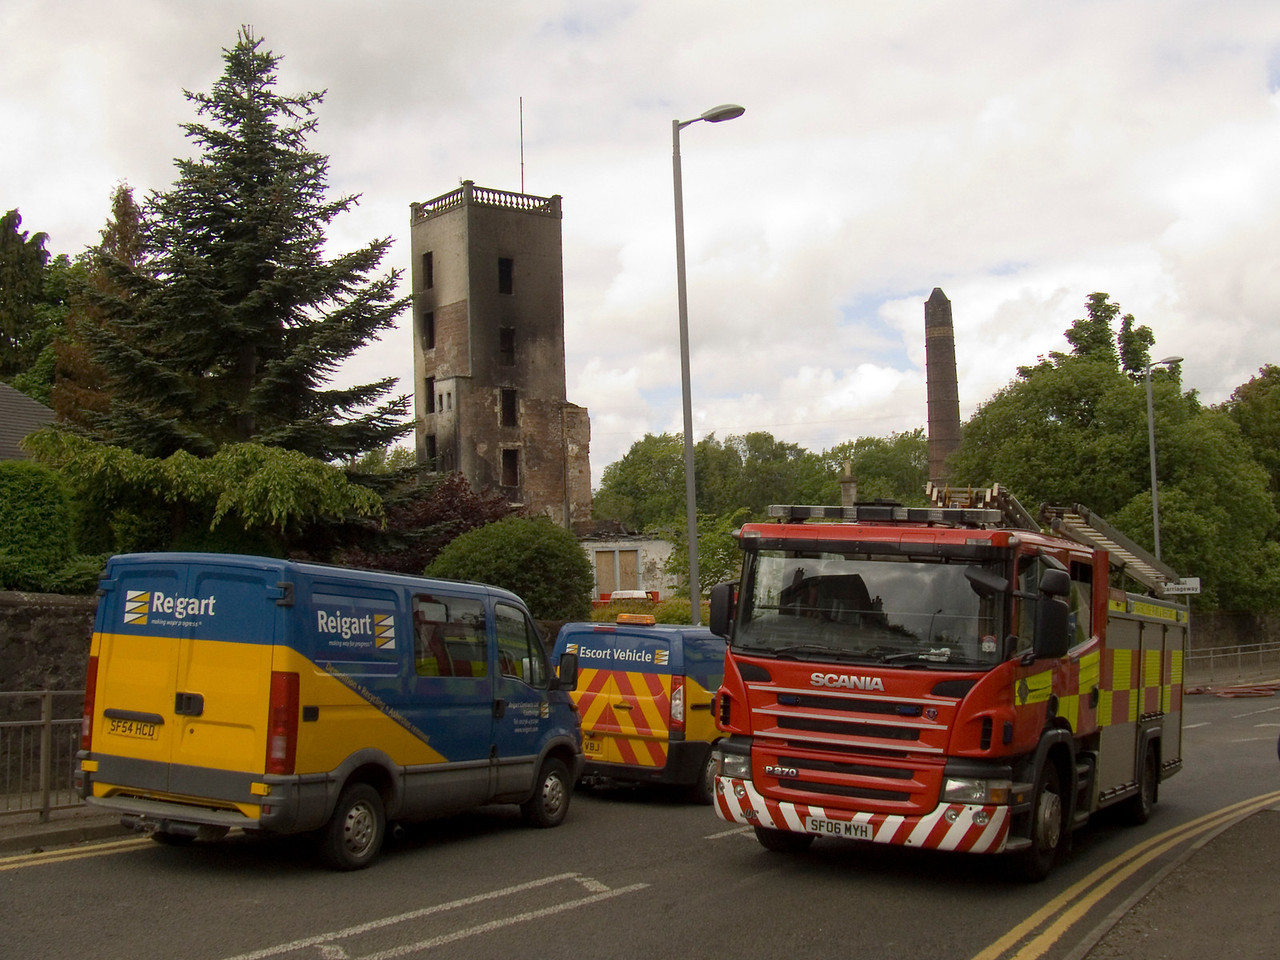 Fire crews and demolition teams in attendance on 2nd June. The fire crew were needed as they were still having to damp down the ruins that were still smouldering, with the demolition teams bringing the remaining unsafe structures down, a sad end to such a fine old building.